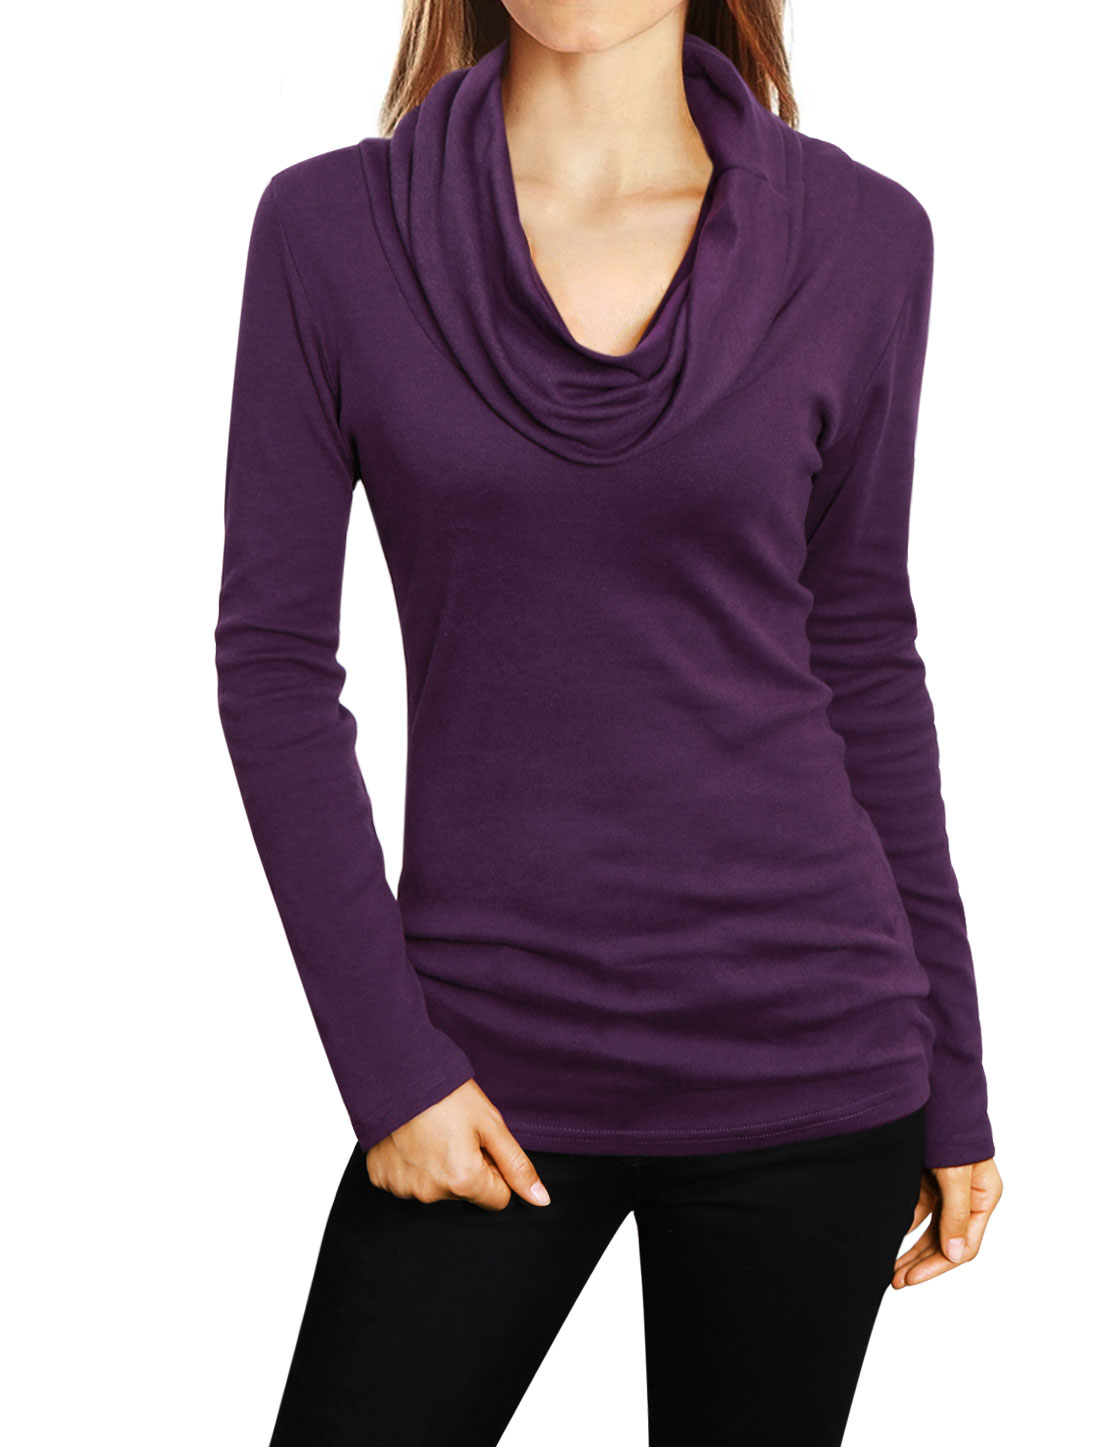 Woman Cowl Neck Long Sleeves Slim Fit Casual Top Purple XS